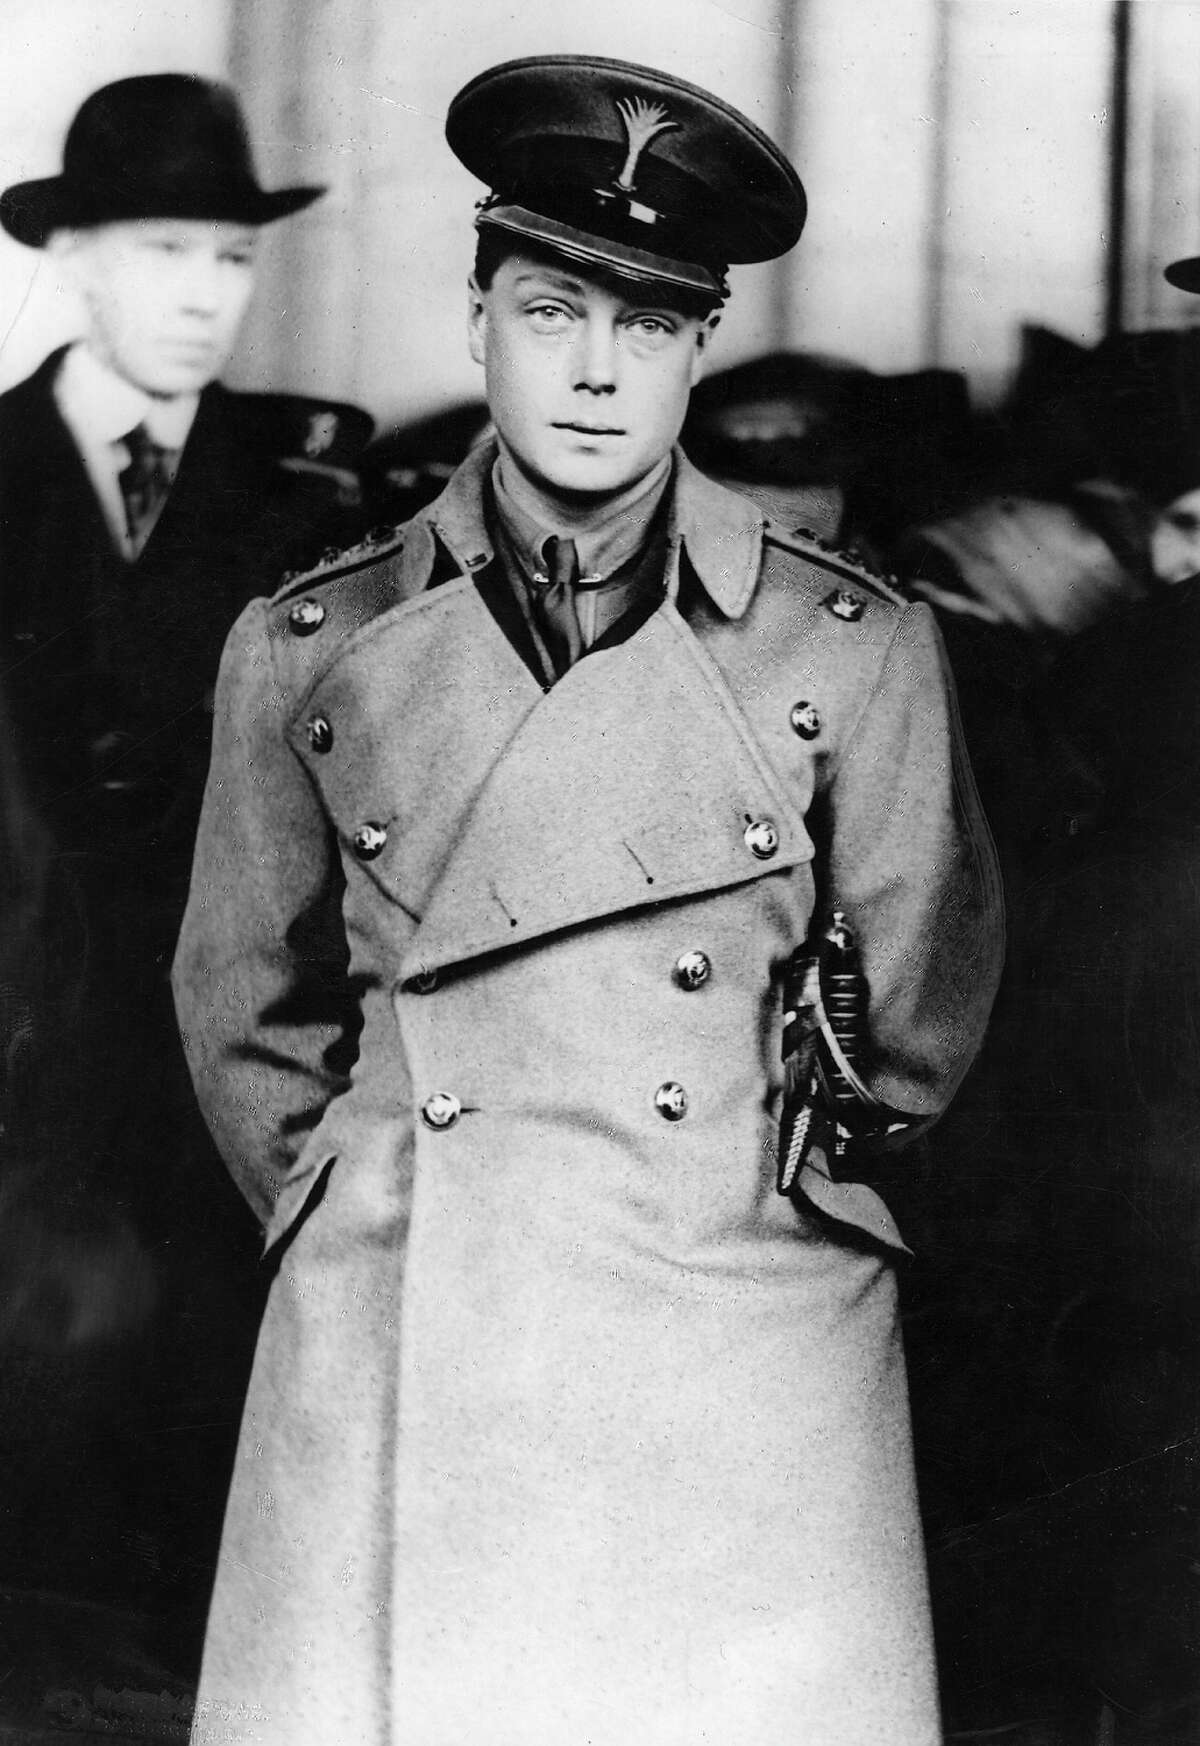 1919: The Prince of Wales, who abdicated as King Edward VIII visits Washington in 1919, he never visited as a monarch, however.